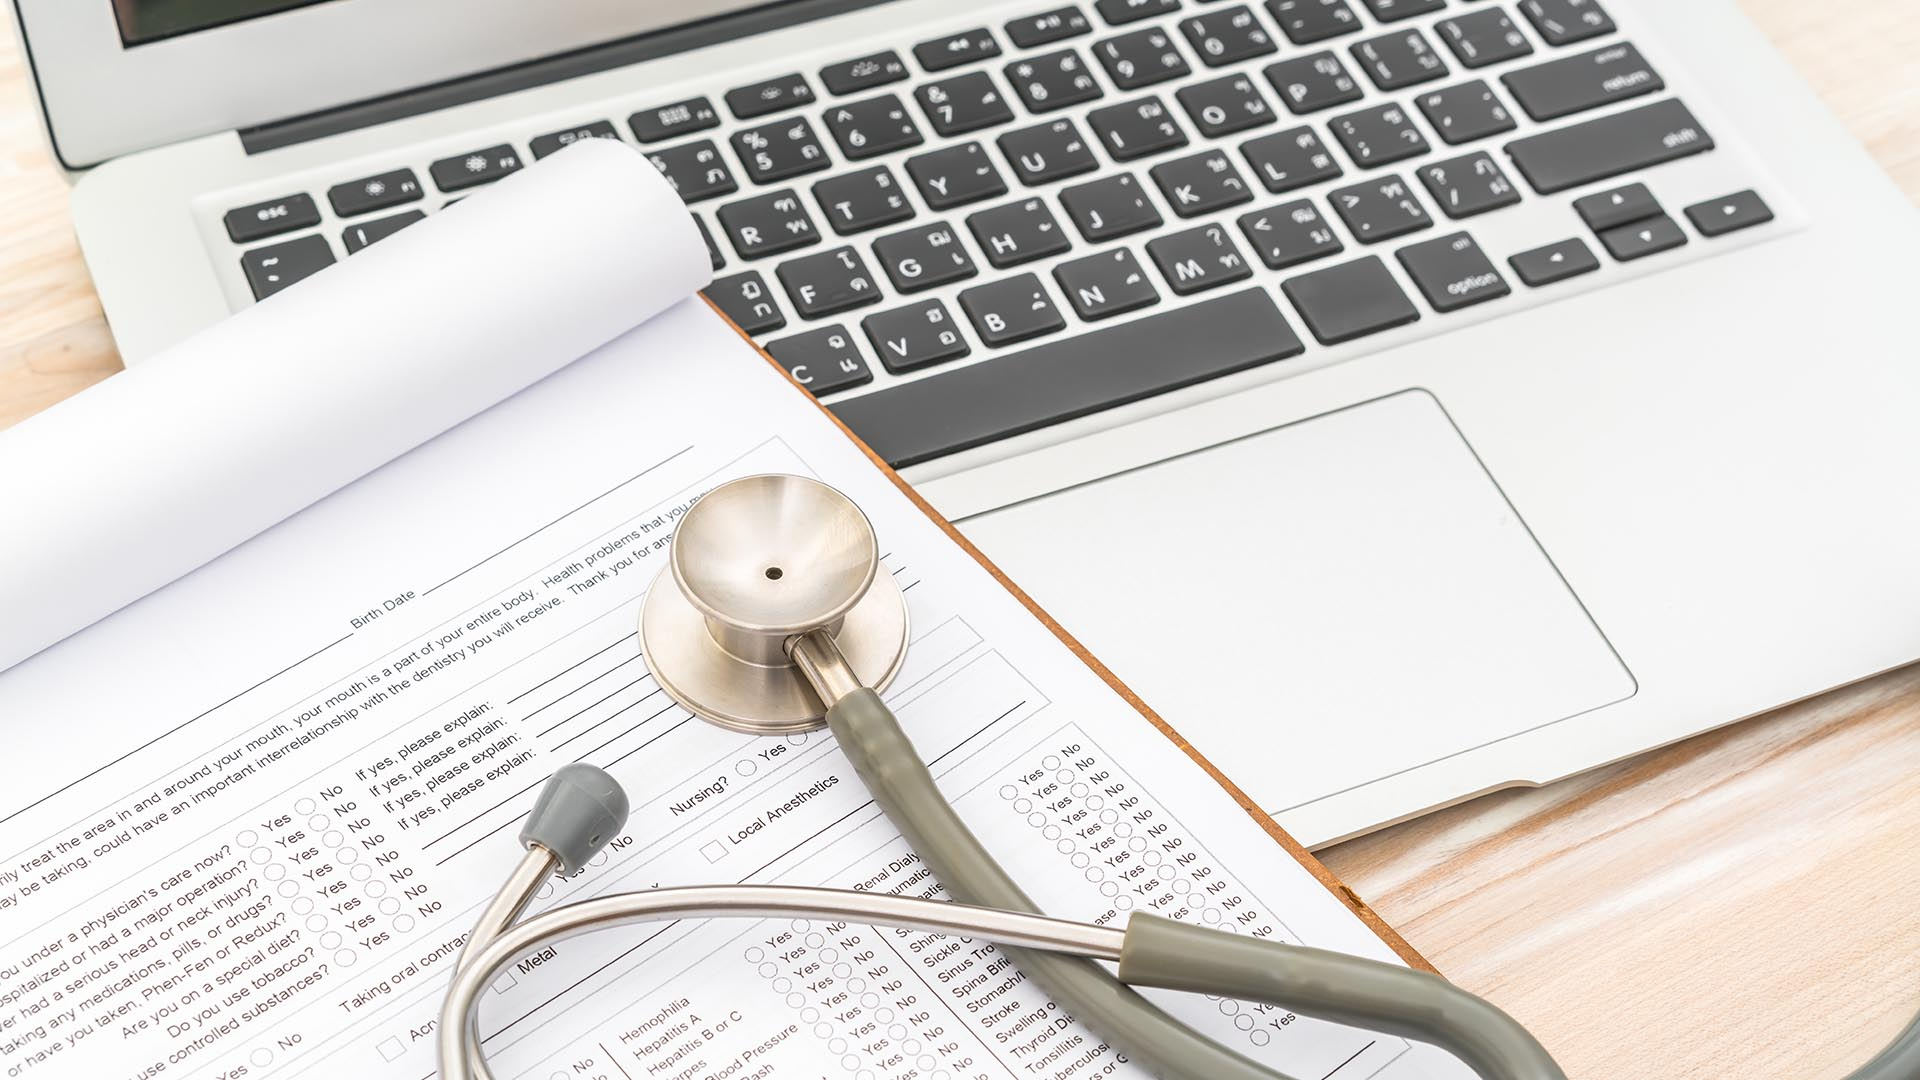 stethoscope, paperwork, and laptop